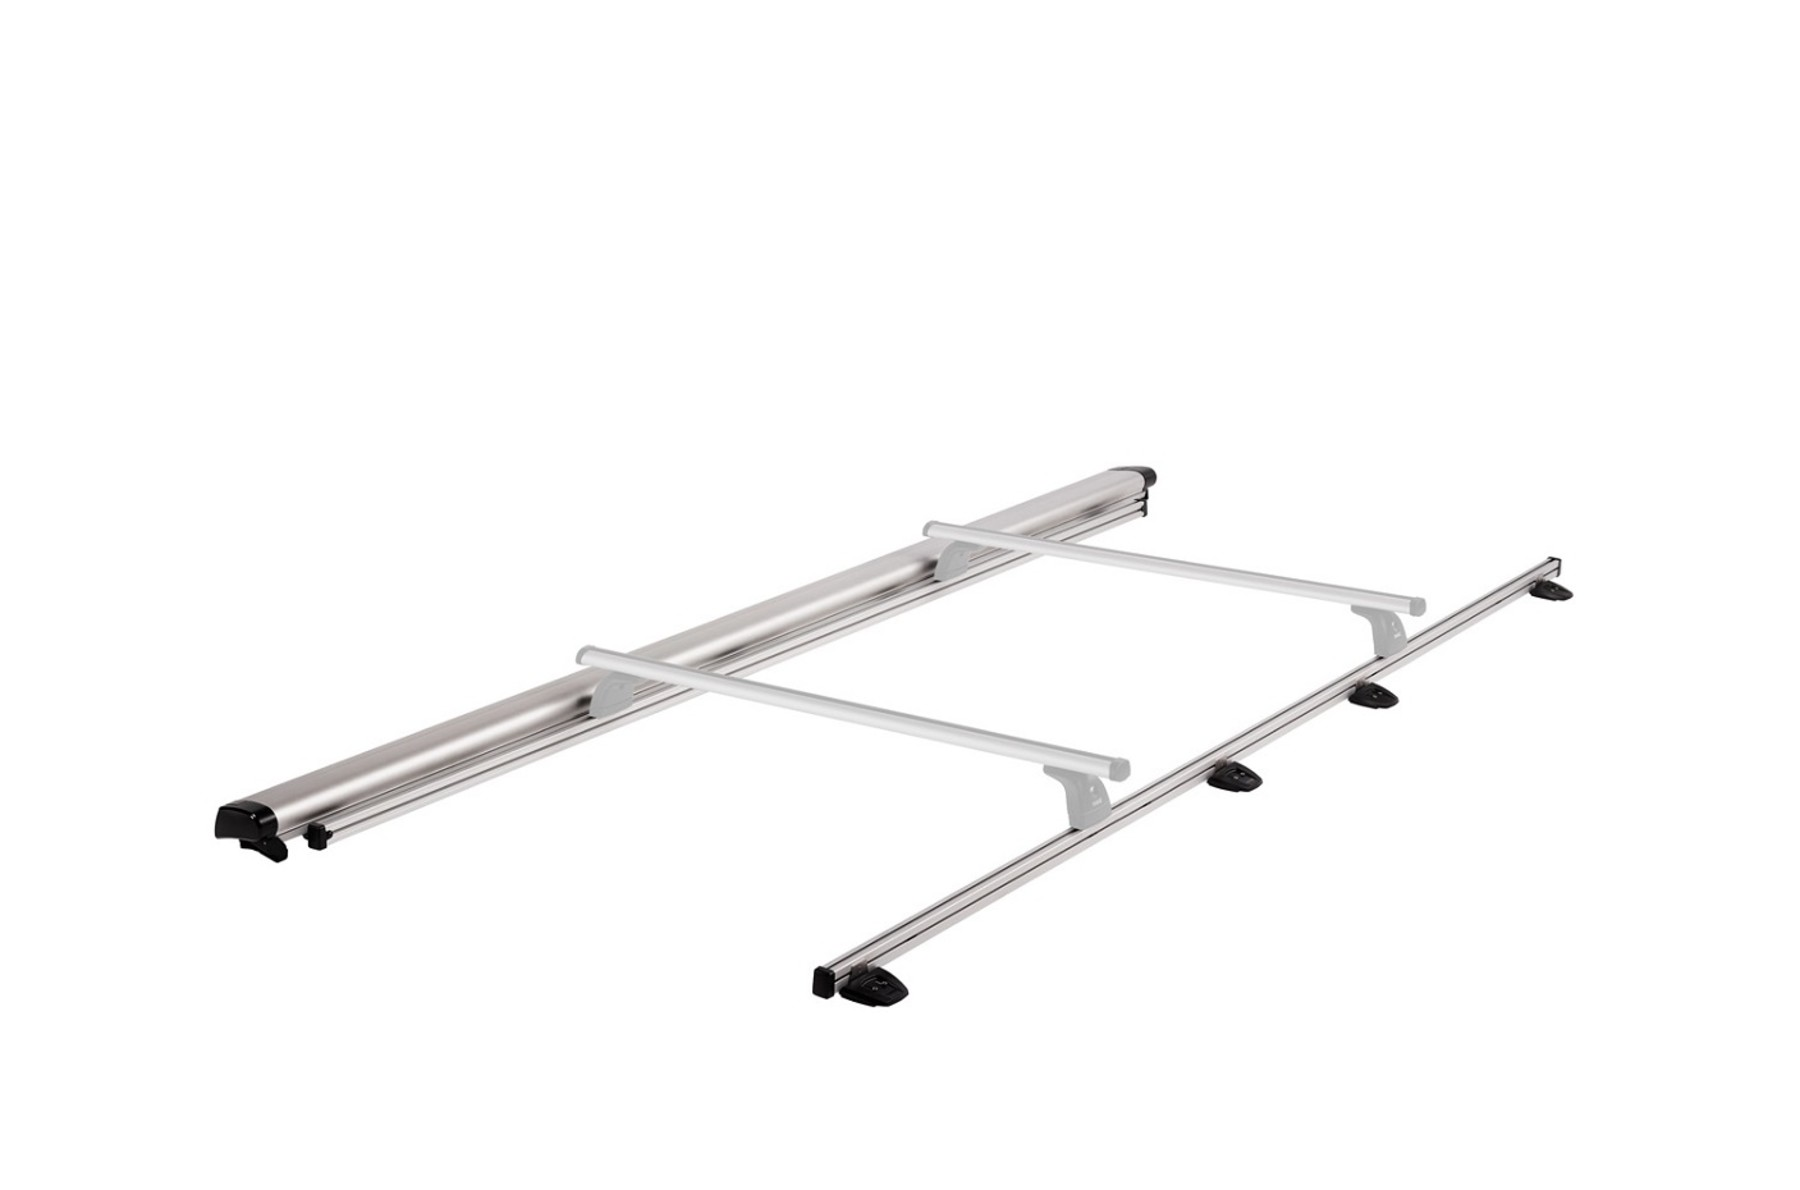 Thule SmartClamp System with awning